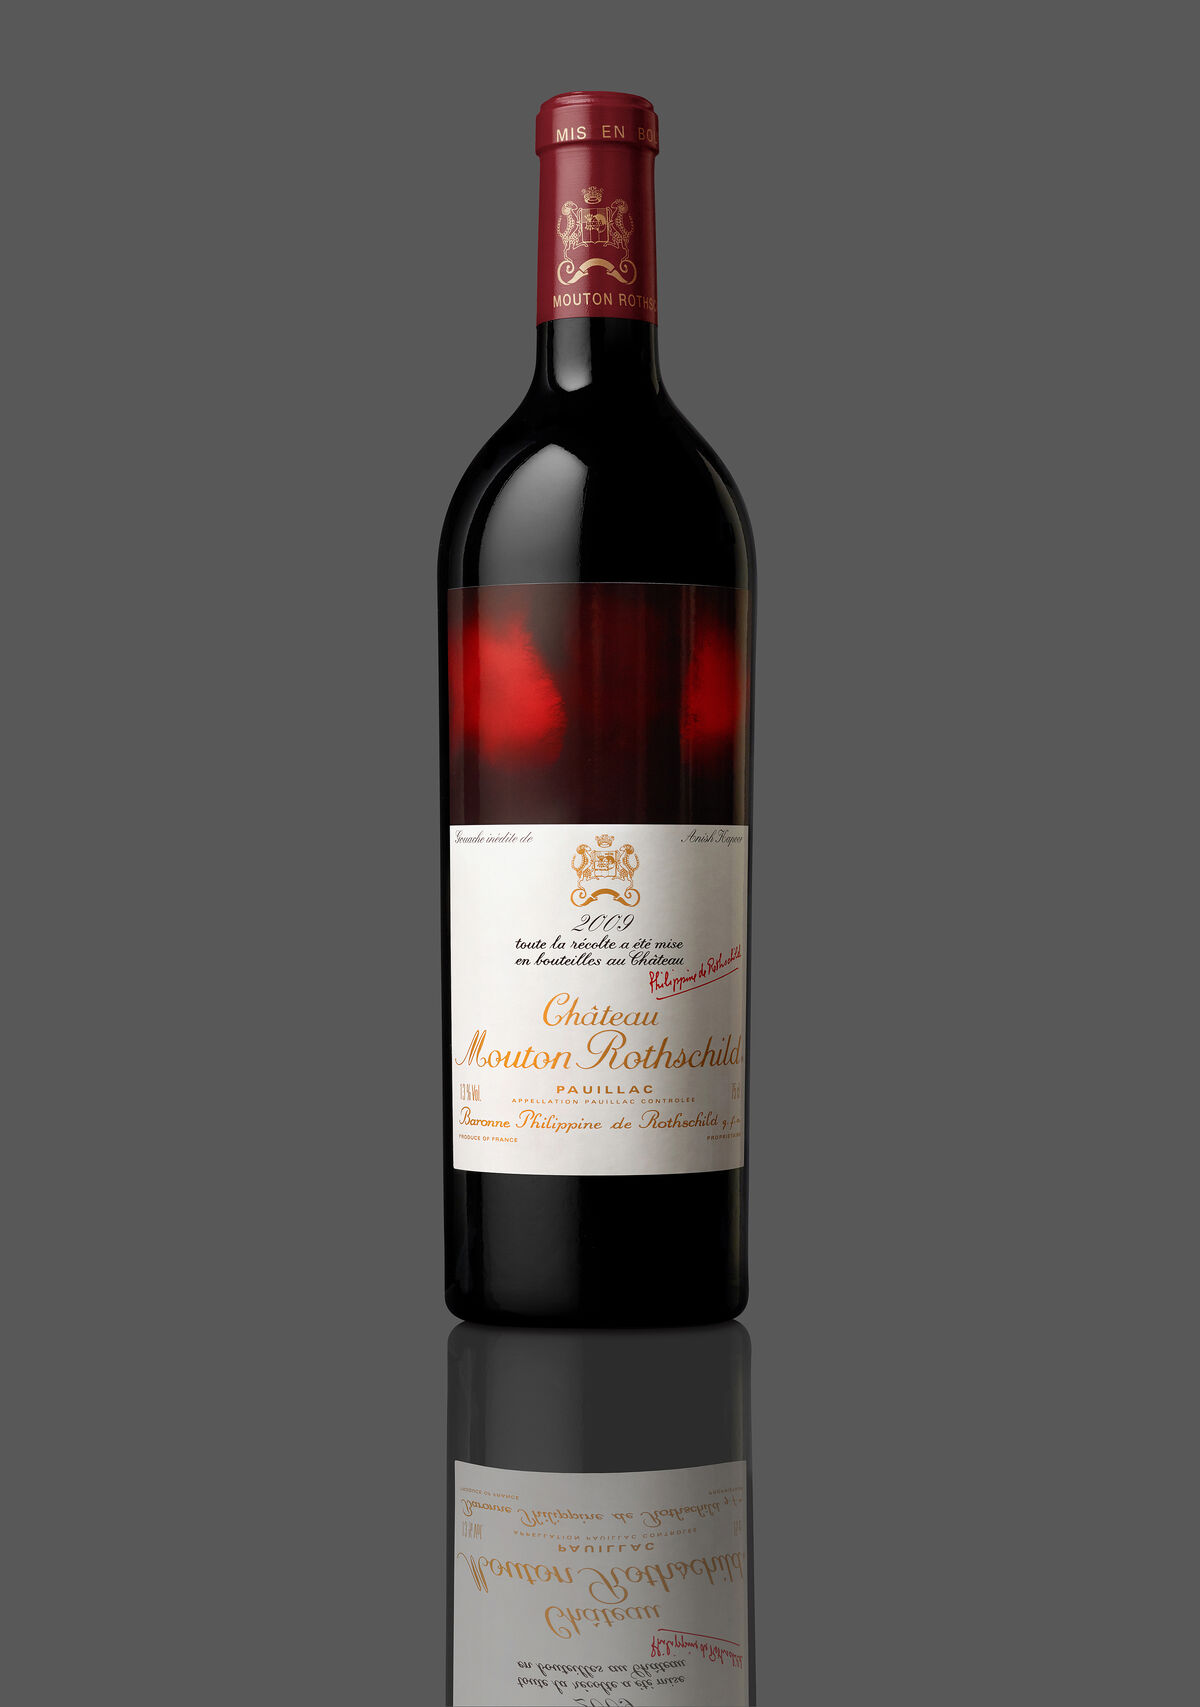 Anish Kapoor designed wine label for Château Mouton Rothschild. Image courtesy of Château Mouton Rothschild.